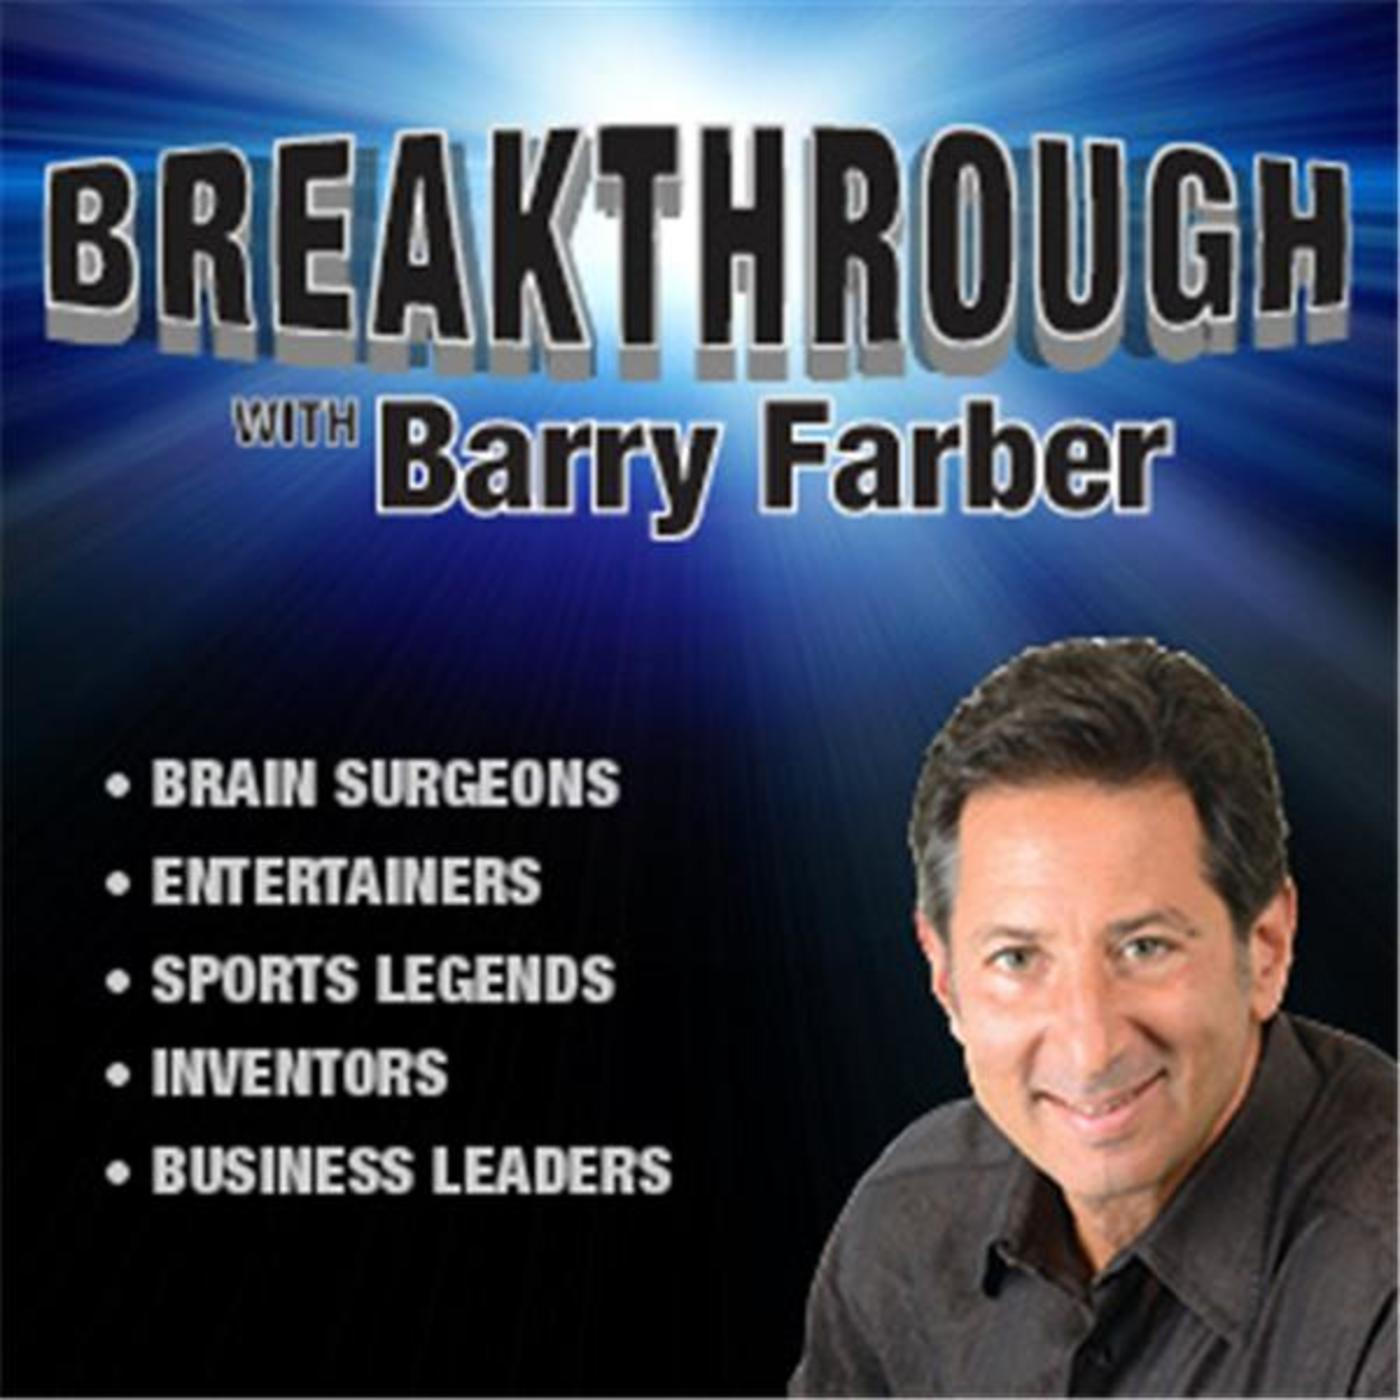 BREAKTHROUGH with Barry Farber